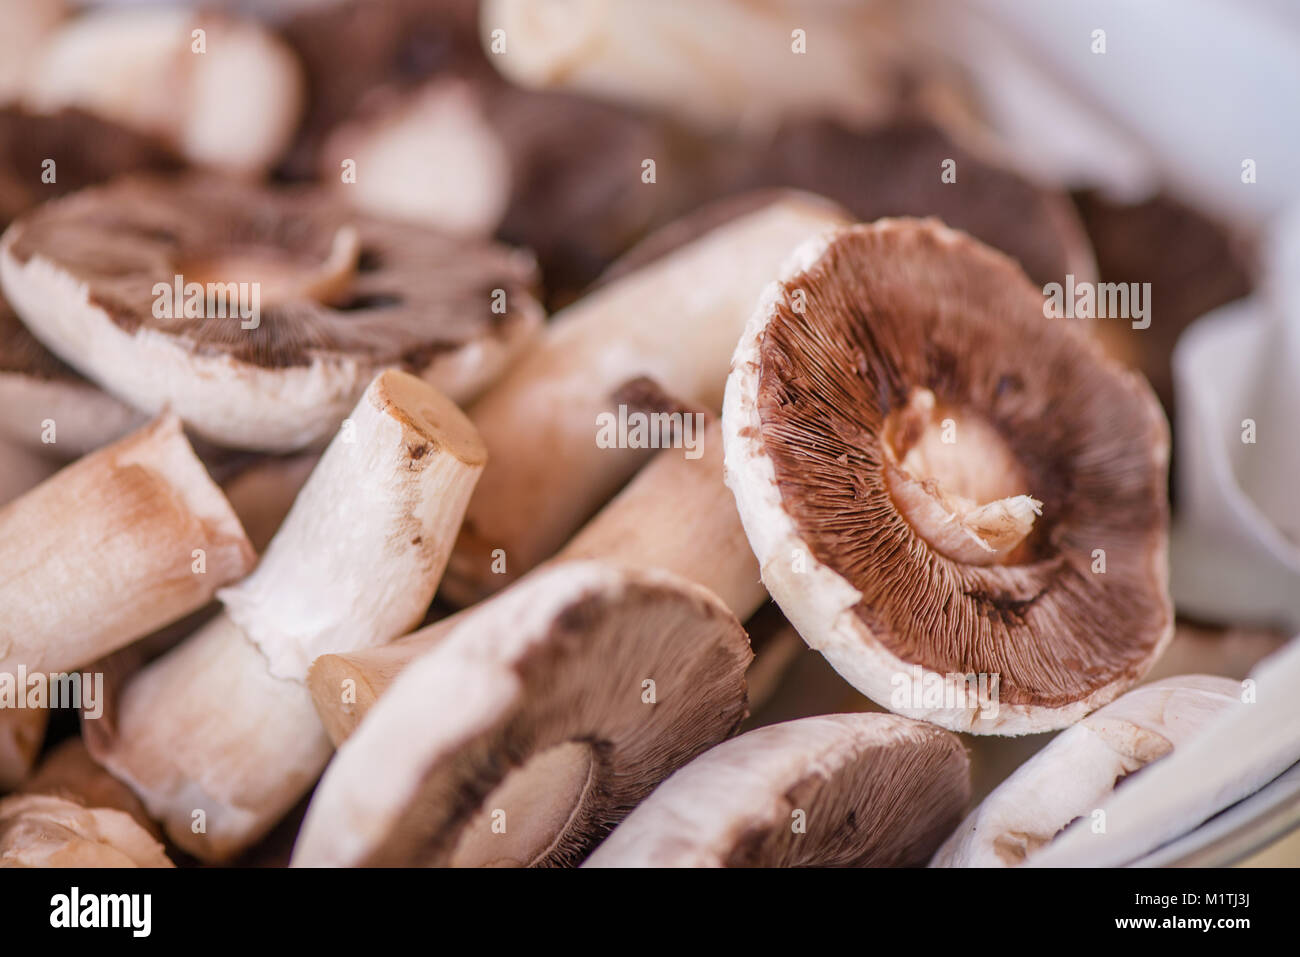 Preparing mushrooms for barbecue on holiday. Mushrooms with cheese spread in bowl. Cooking vegetables. Delicious Stock Photo